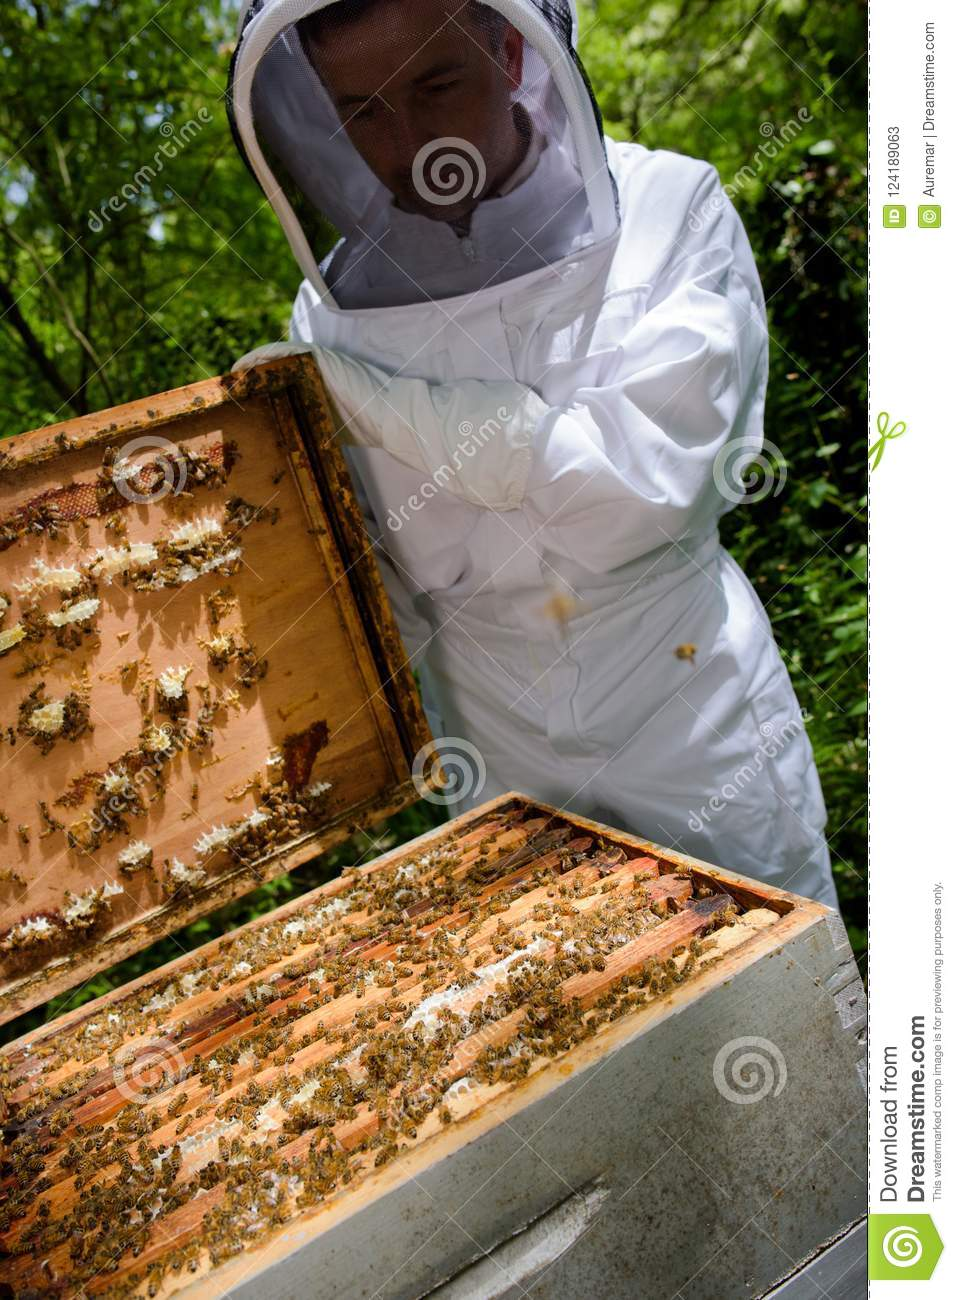 Checking the bee box